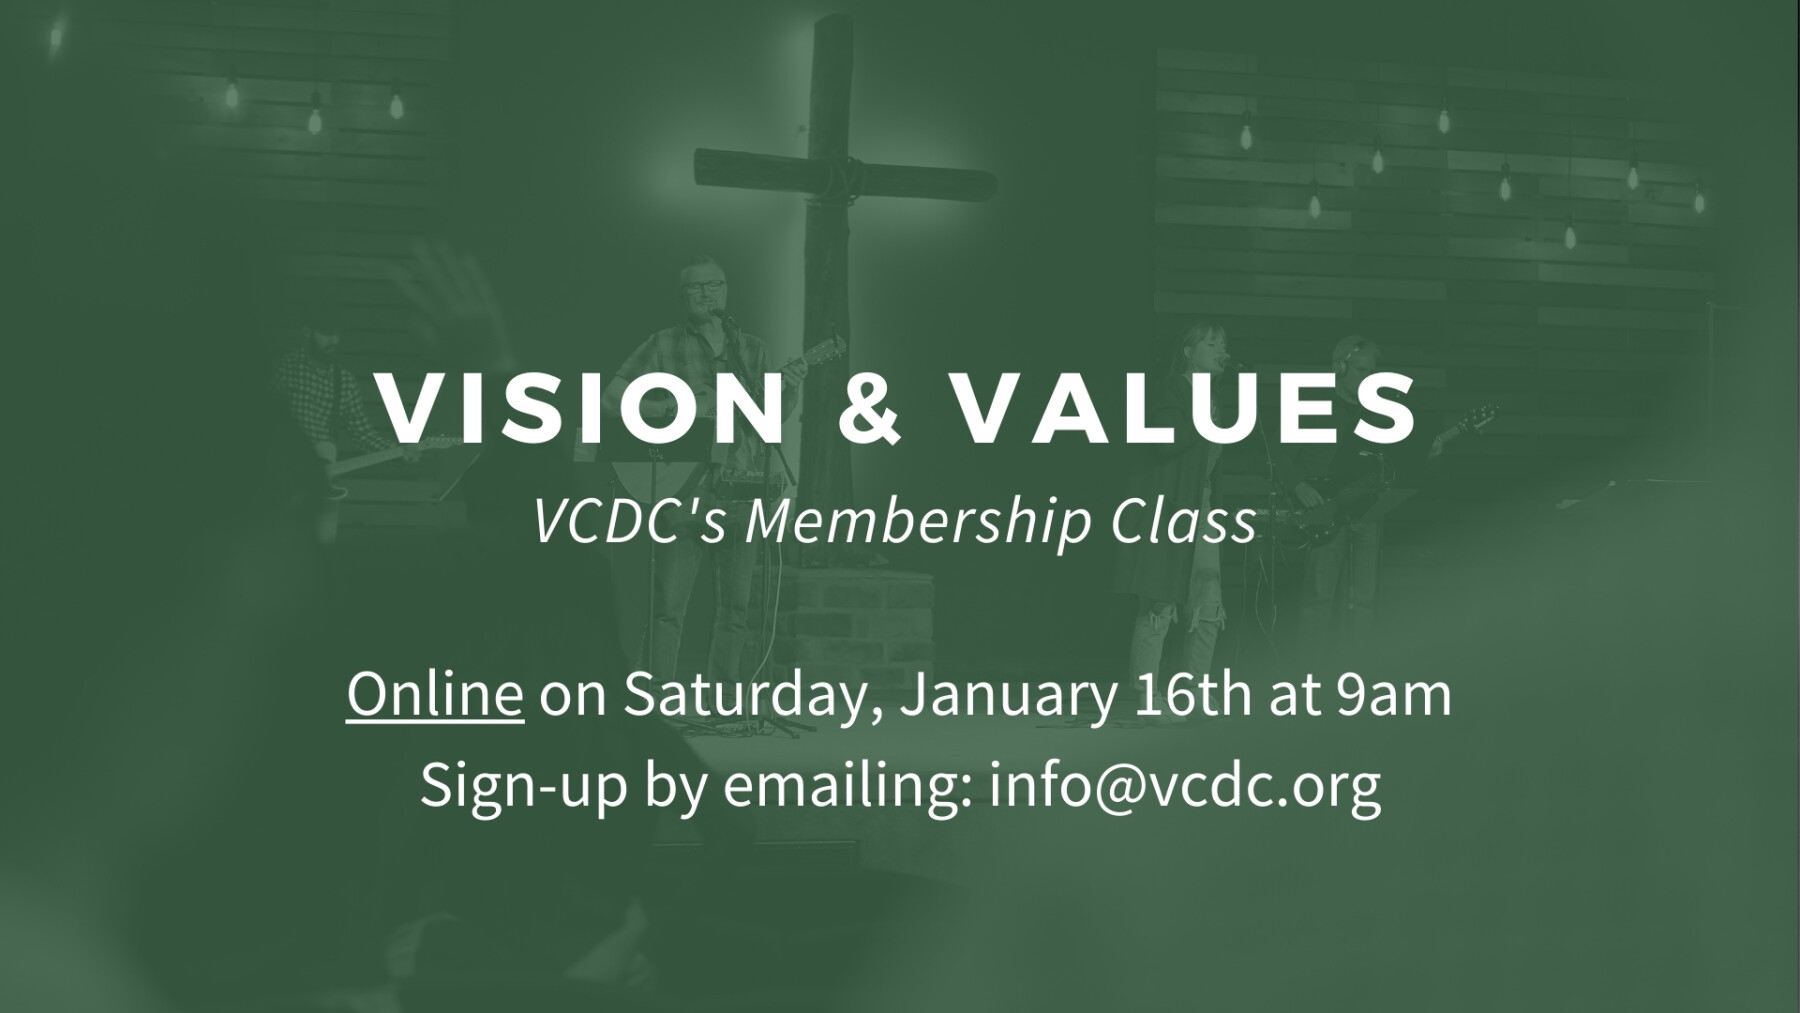 Vision & Values Online Zoom Class: January 16th at 9am